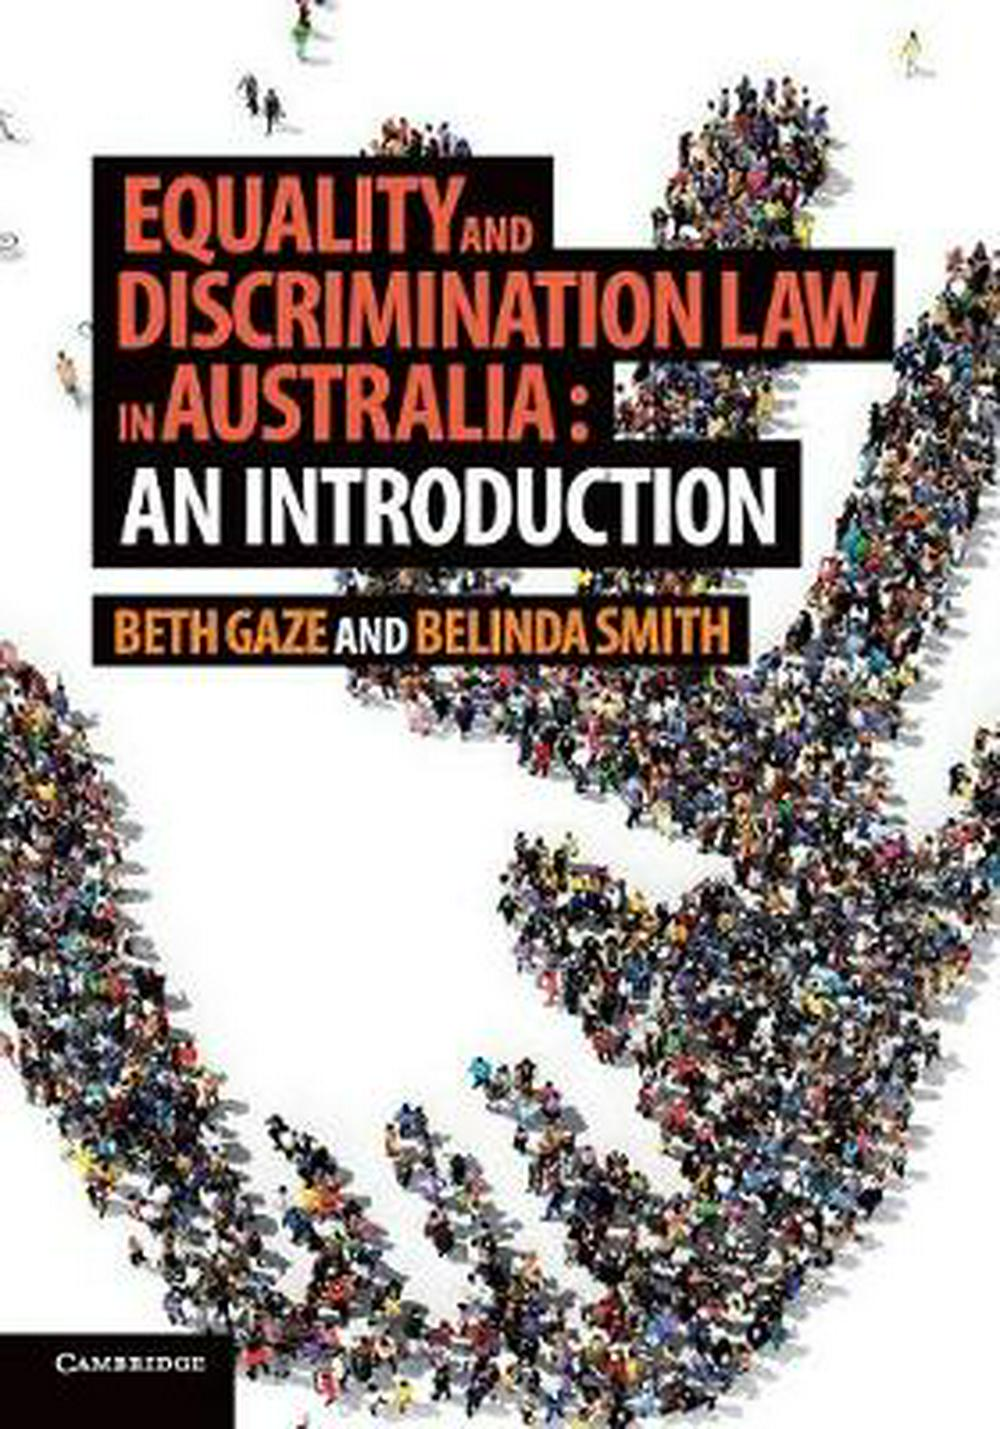 An Introduction to Equality and Discrimination Law in Australia by Associate Professor Beth Gaze, ISBN: 9781107432253